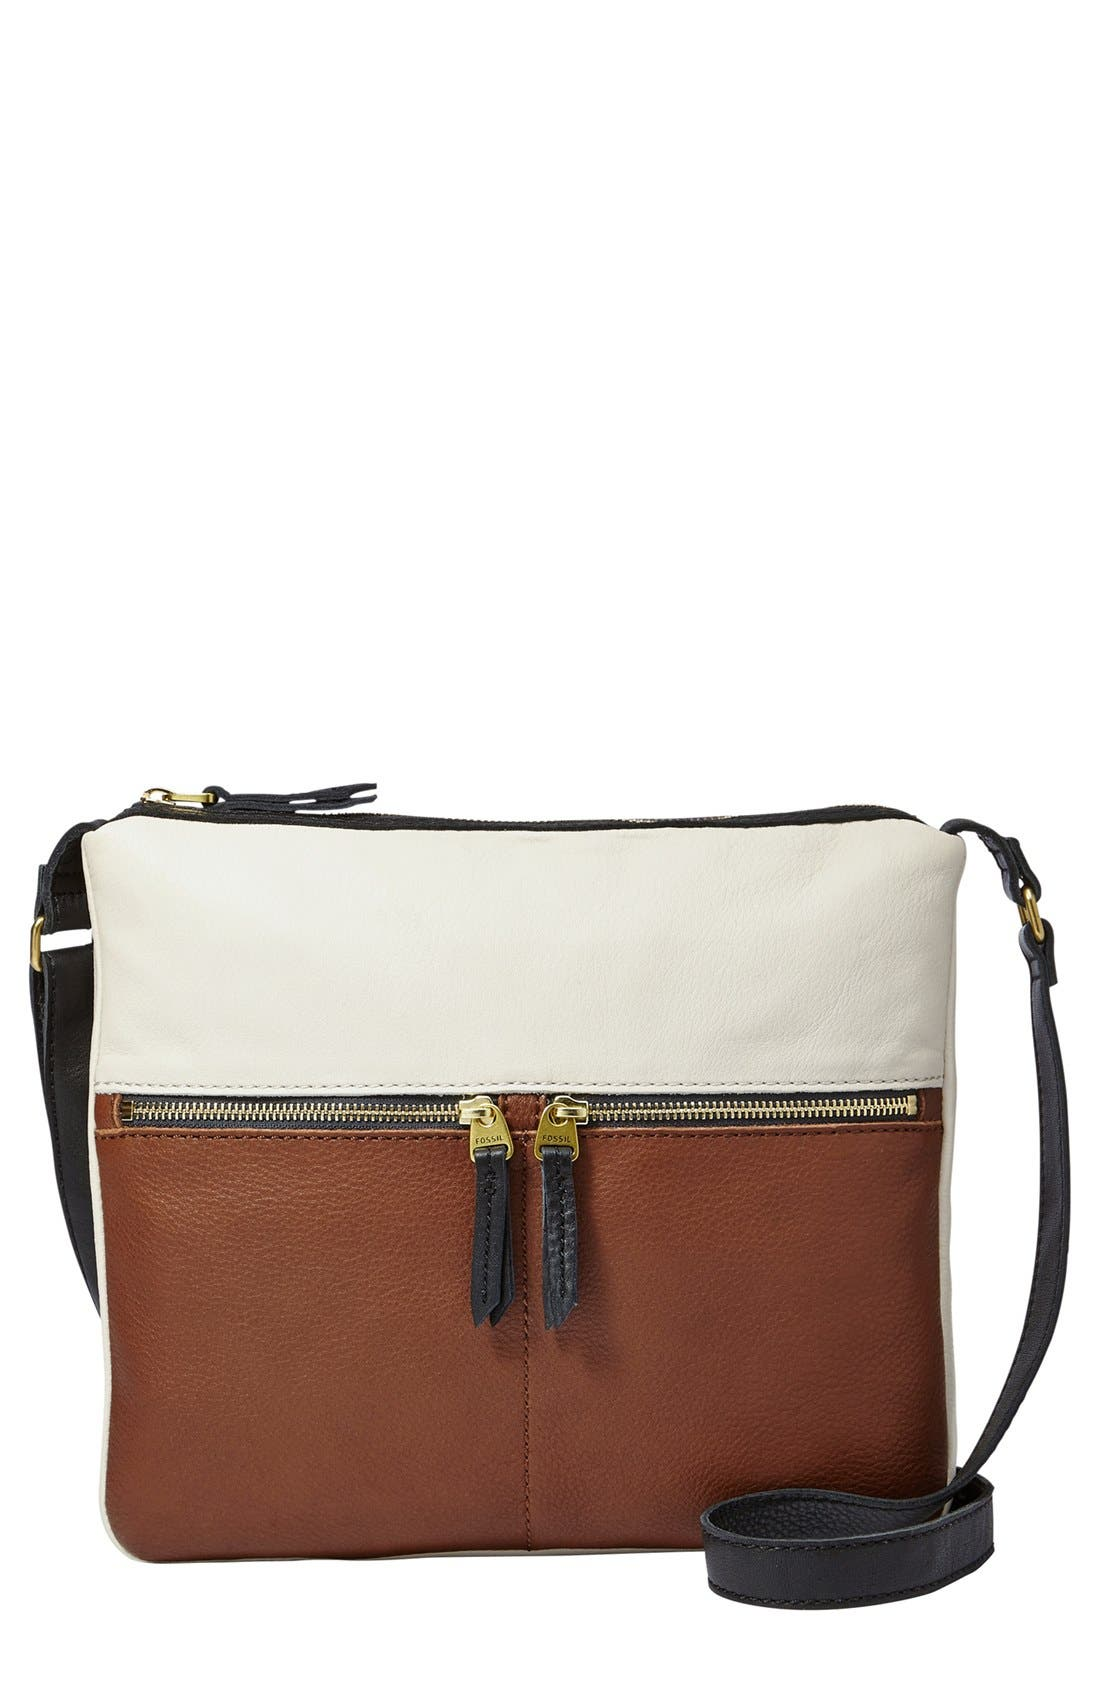 Alternate Image 1 Selected - Fossil 'Erin' Colorblock Crossbody Bag